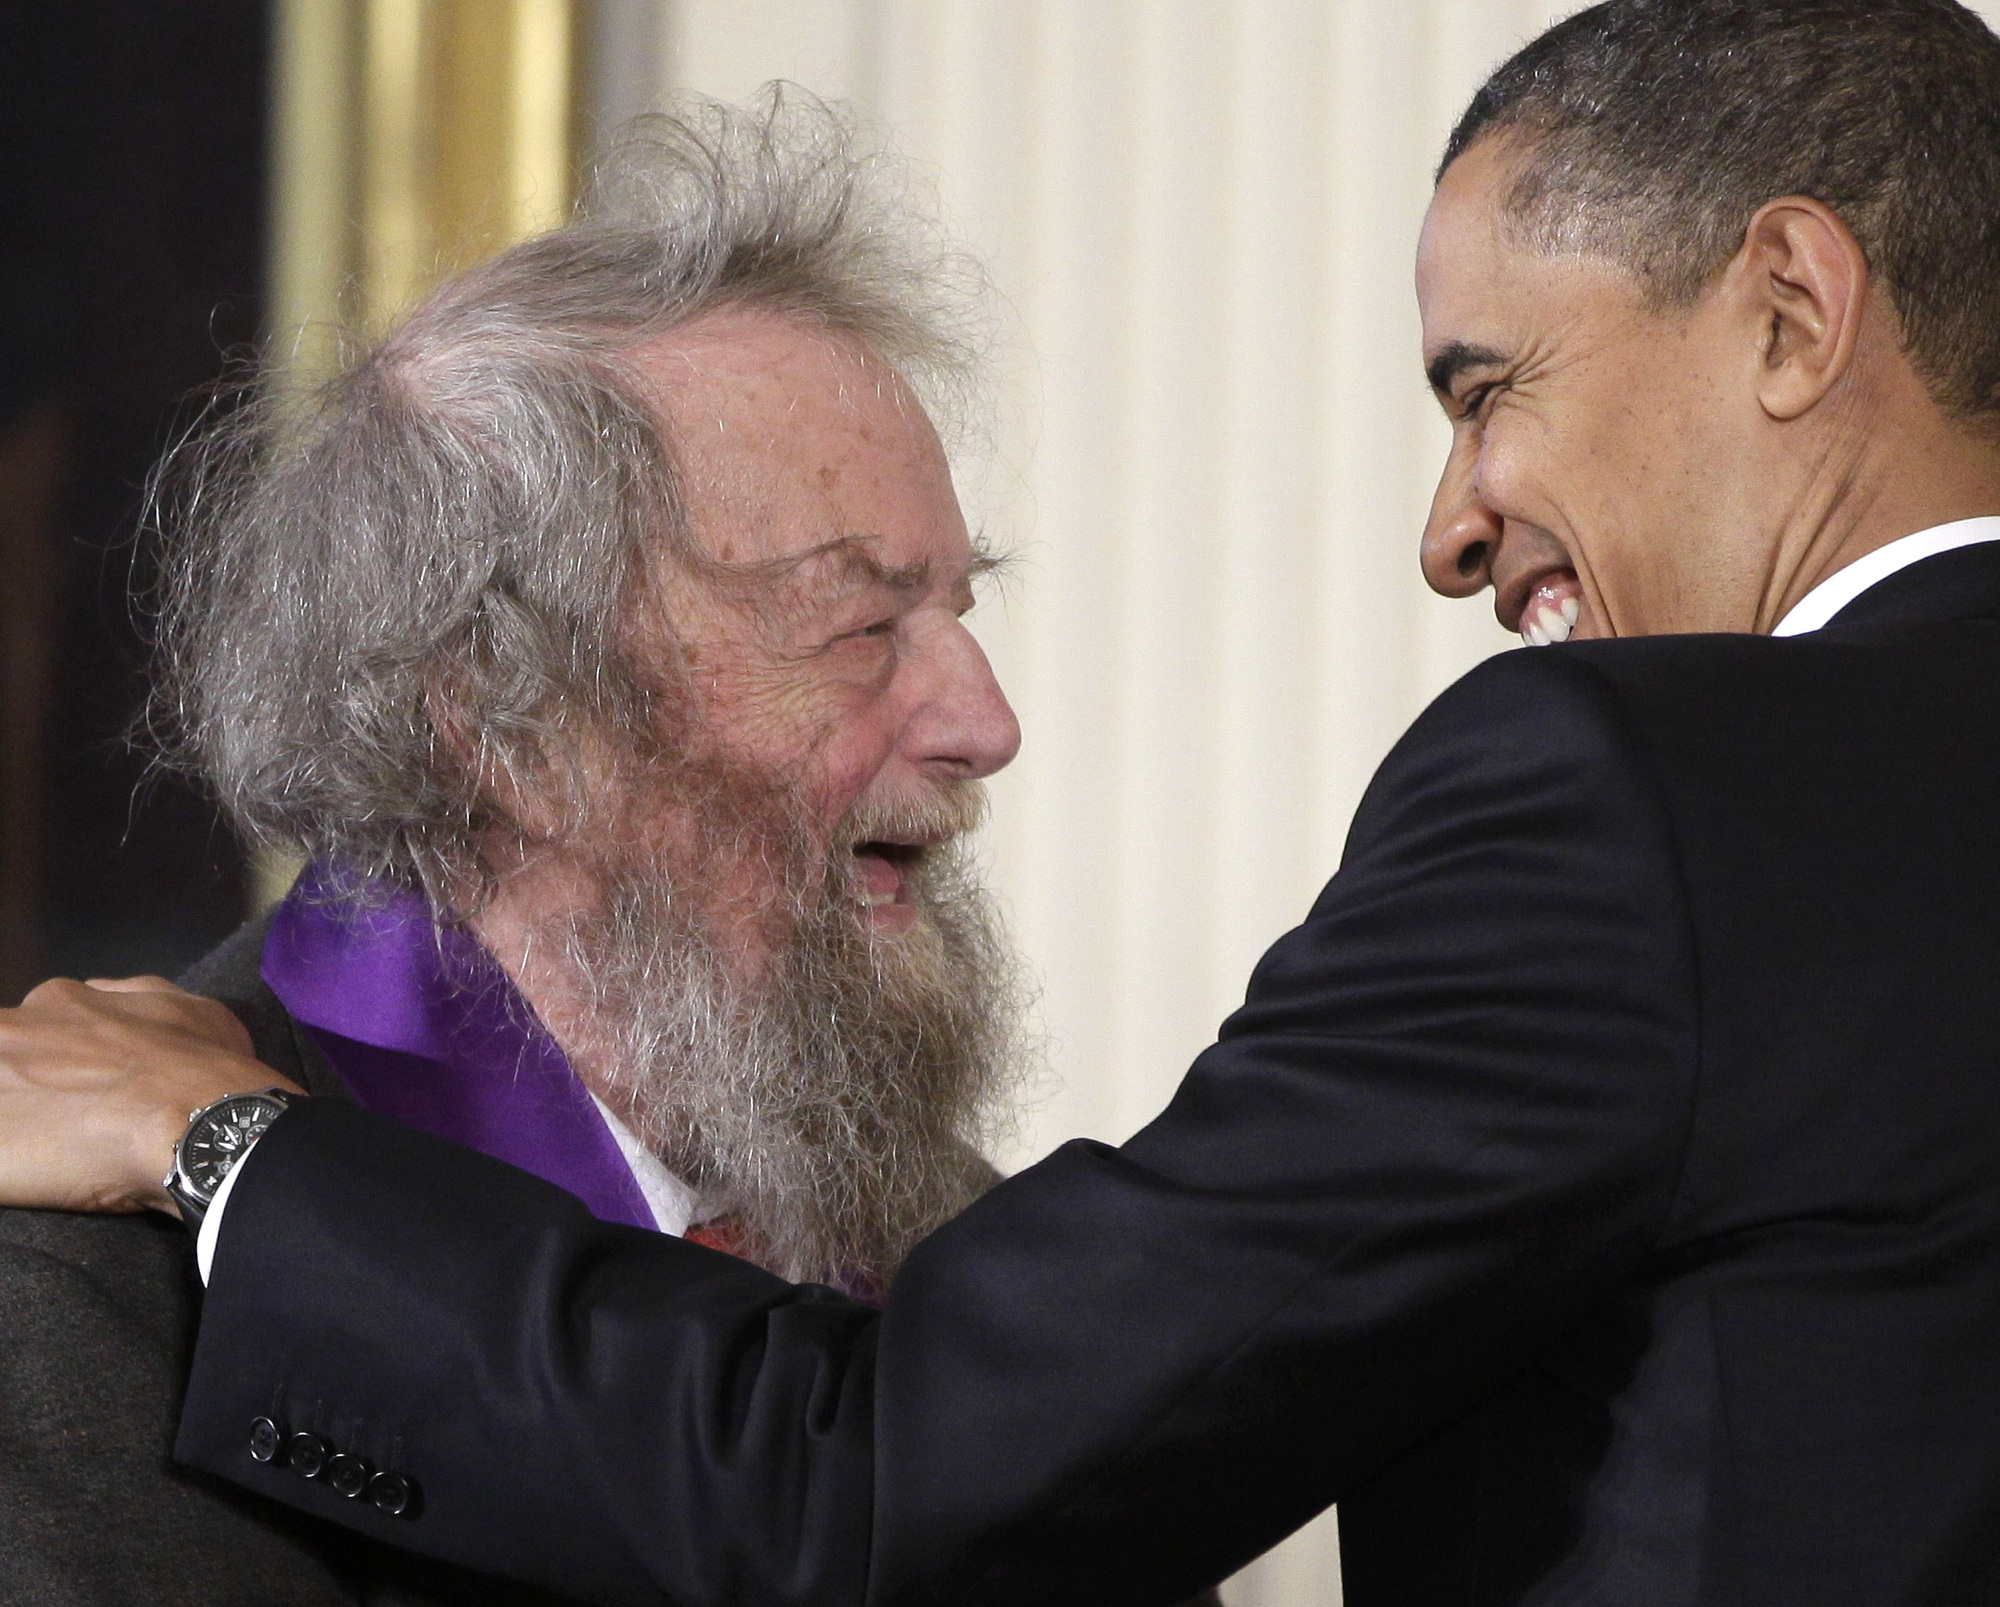 donald hall essay poetry The donald hall prize for poetry offers an award of $5,500 see a list of previous awp award series winners previous winners contests overview.